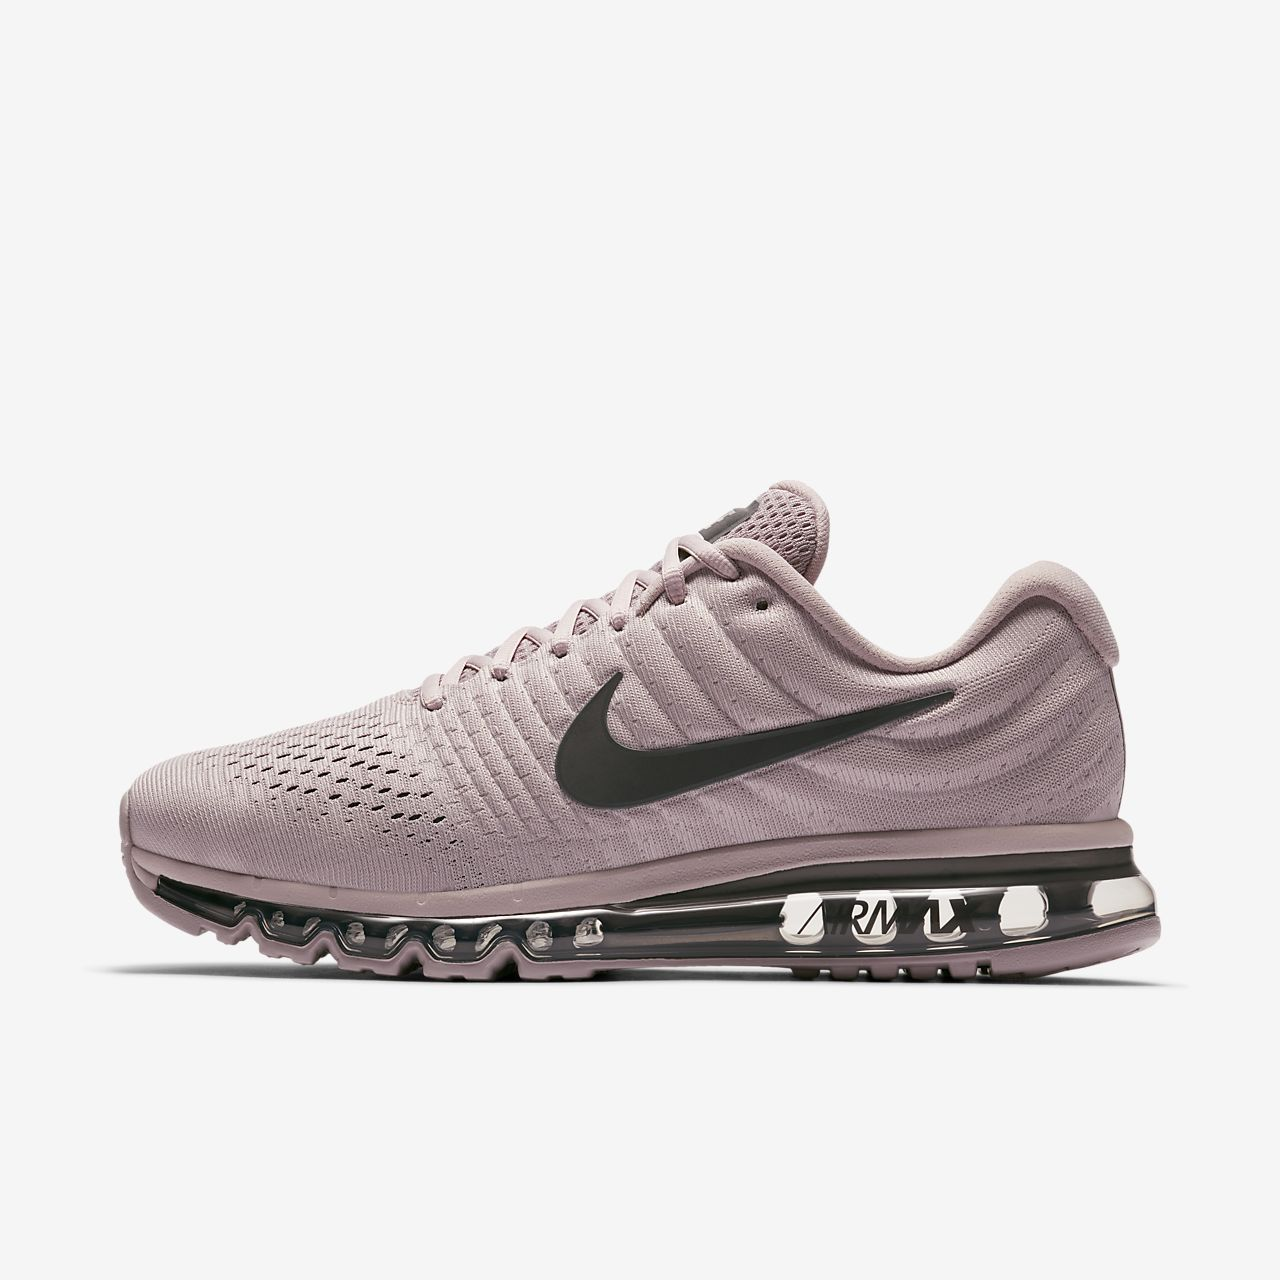 best website ba2a0 286b9 ... Nike Air Max 2017 SE Mens Shoe